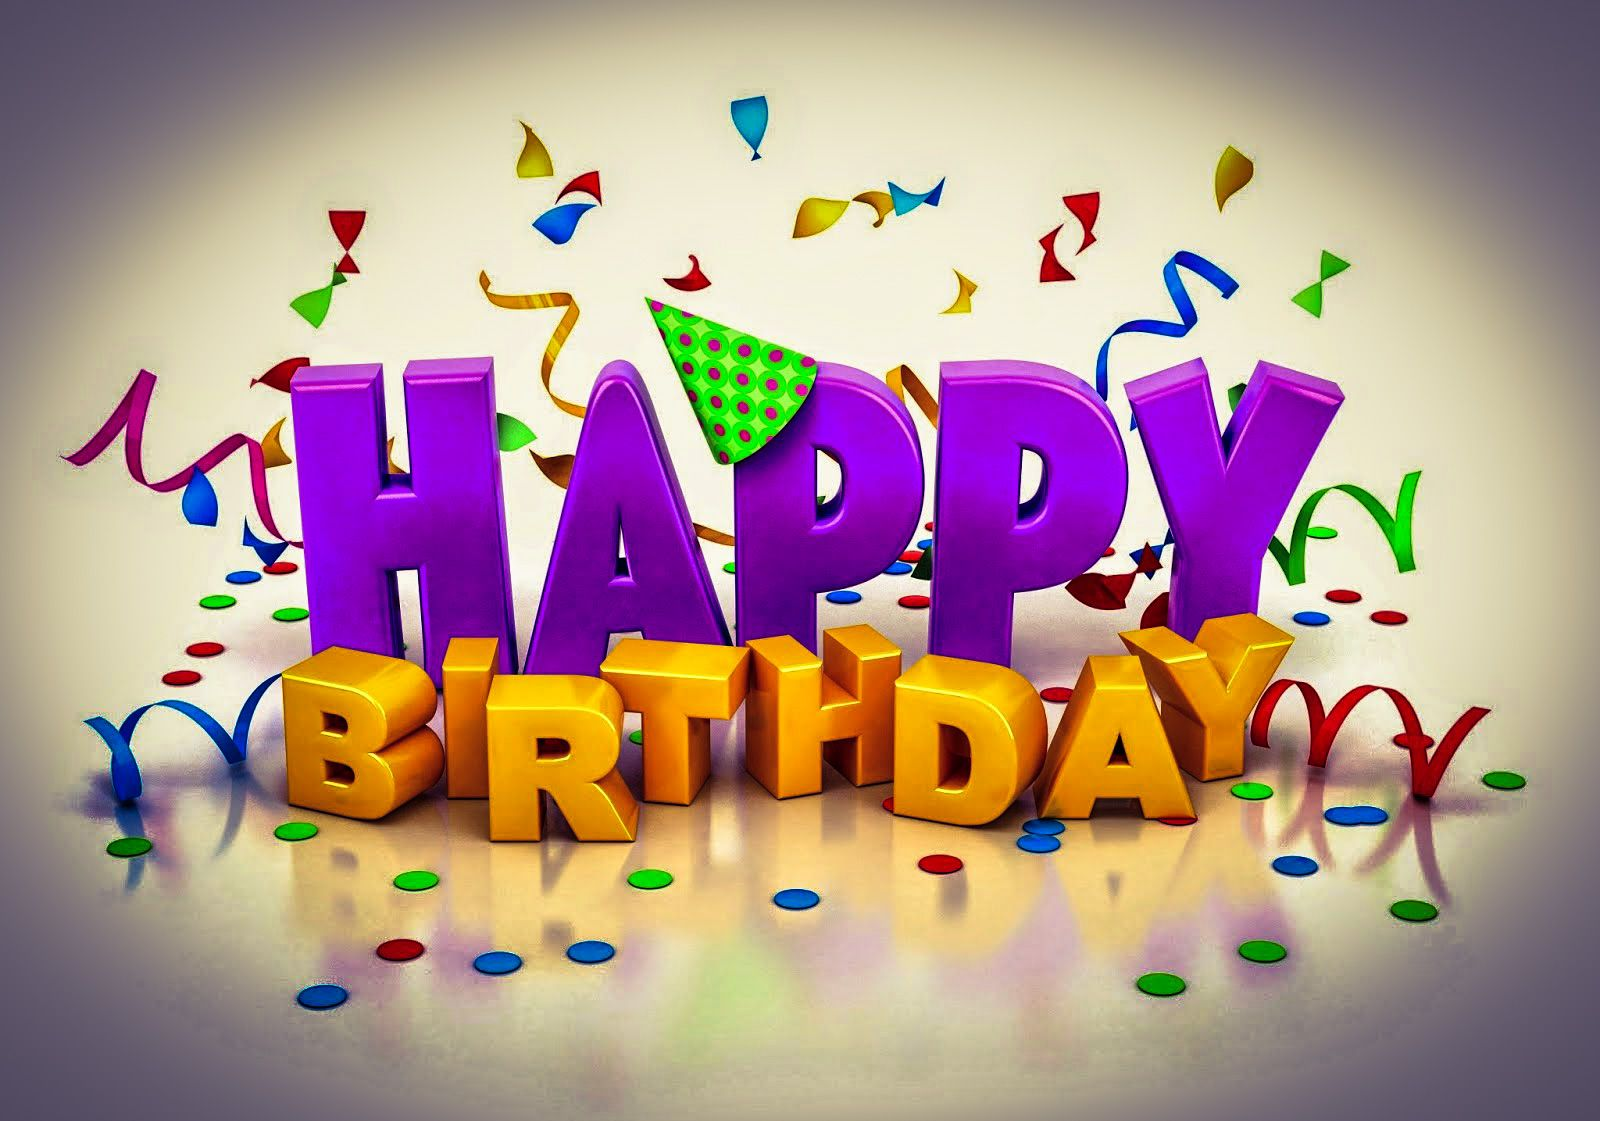 Happy 1st birthday onlinerockershub thanks for the love and its been a year since onlinerockershub born happy 1st birthday onlinerockershub thank you all kristyandbryce Gallery